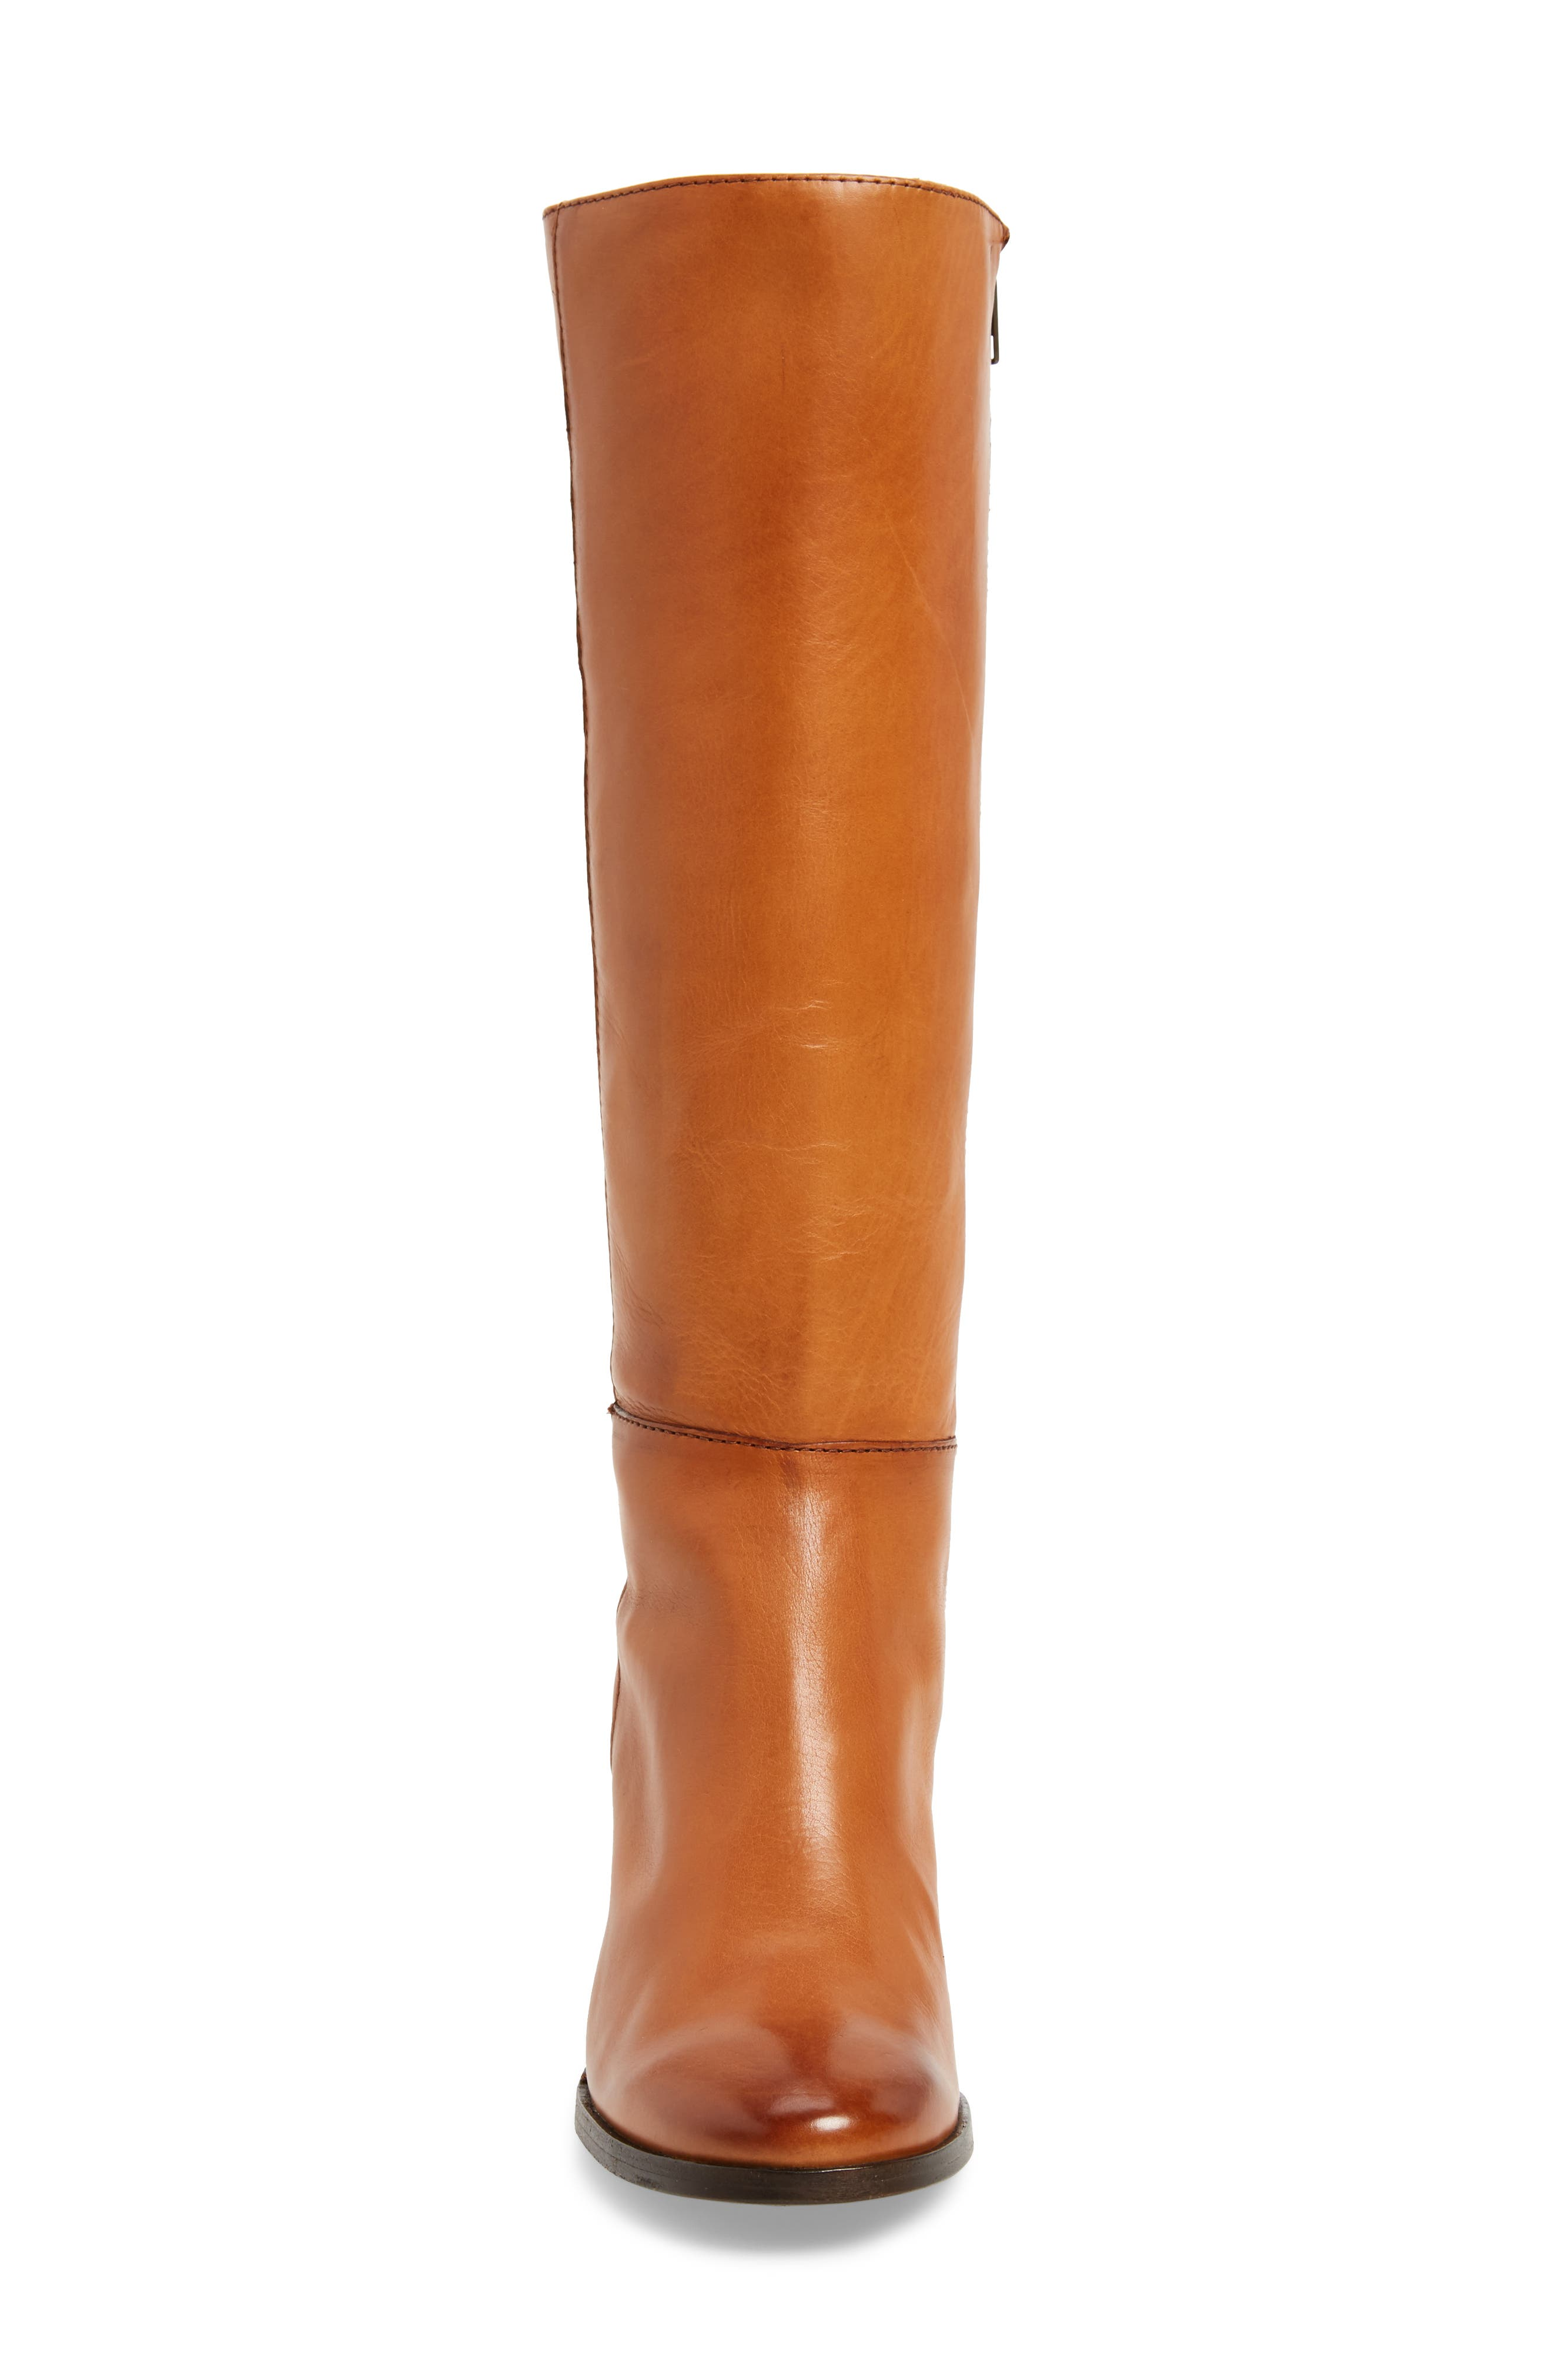 Nova Floral Embroidered Knee High Boot,                             Alternate thumbnail 4, color,                             Cognac Fabric